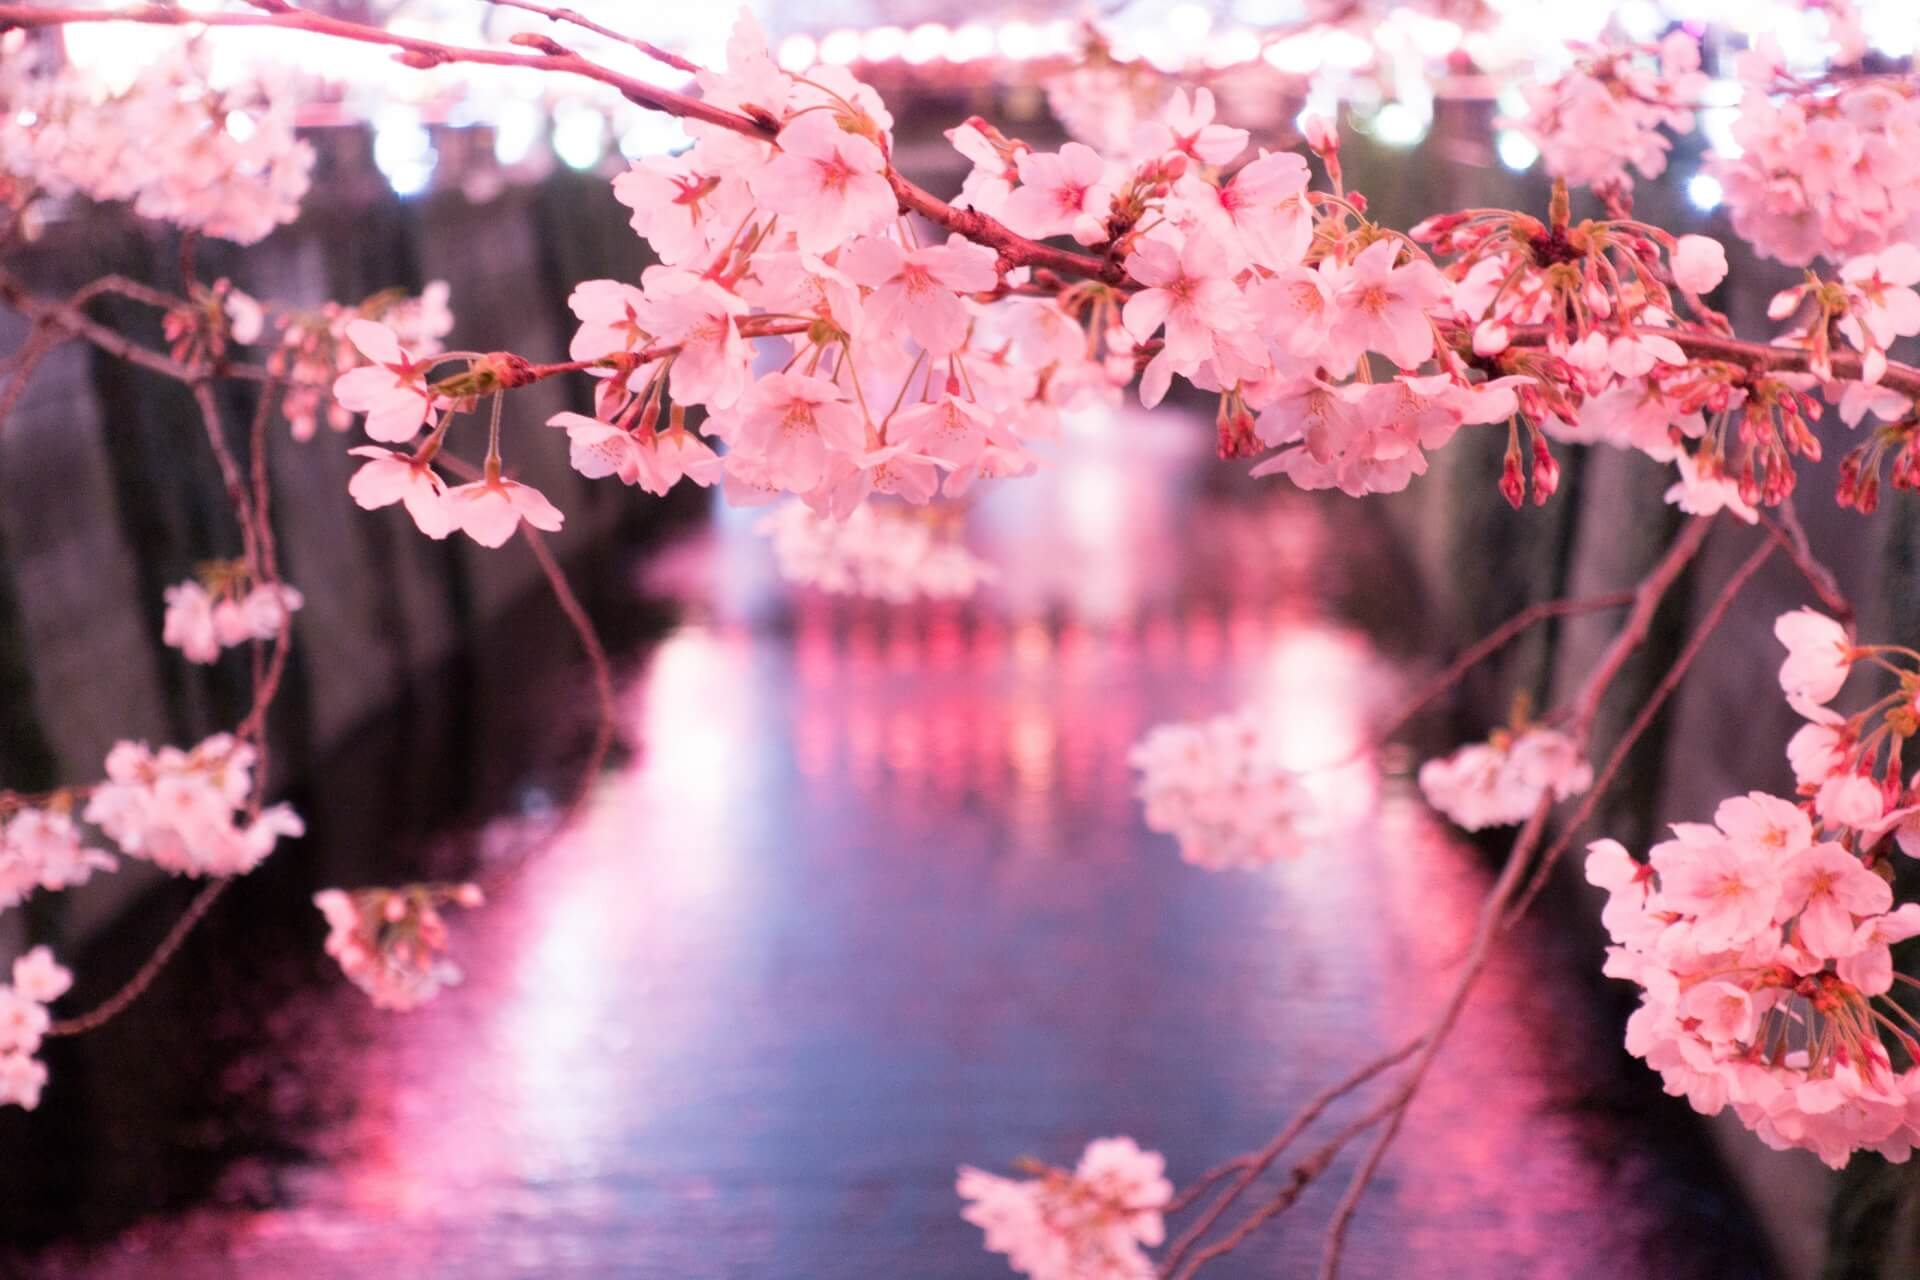 25 Best Places to See Cherry Blossoms In & Around Tokyo